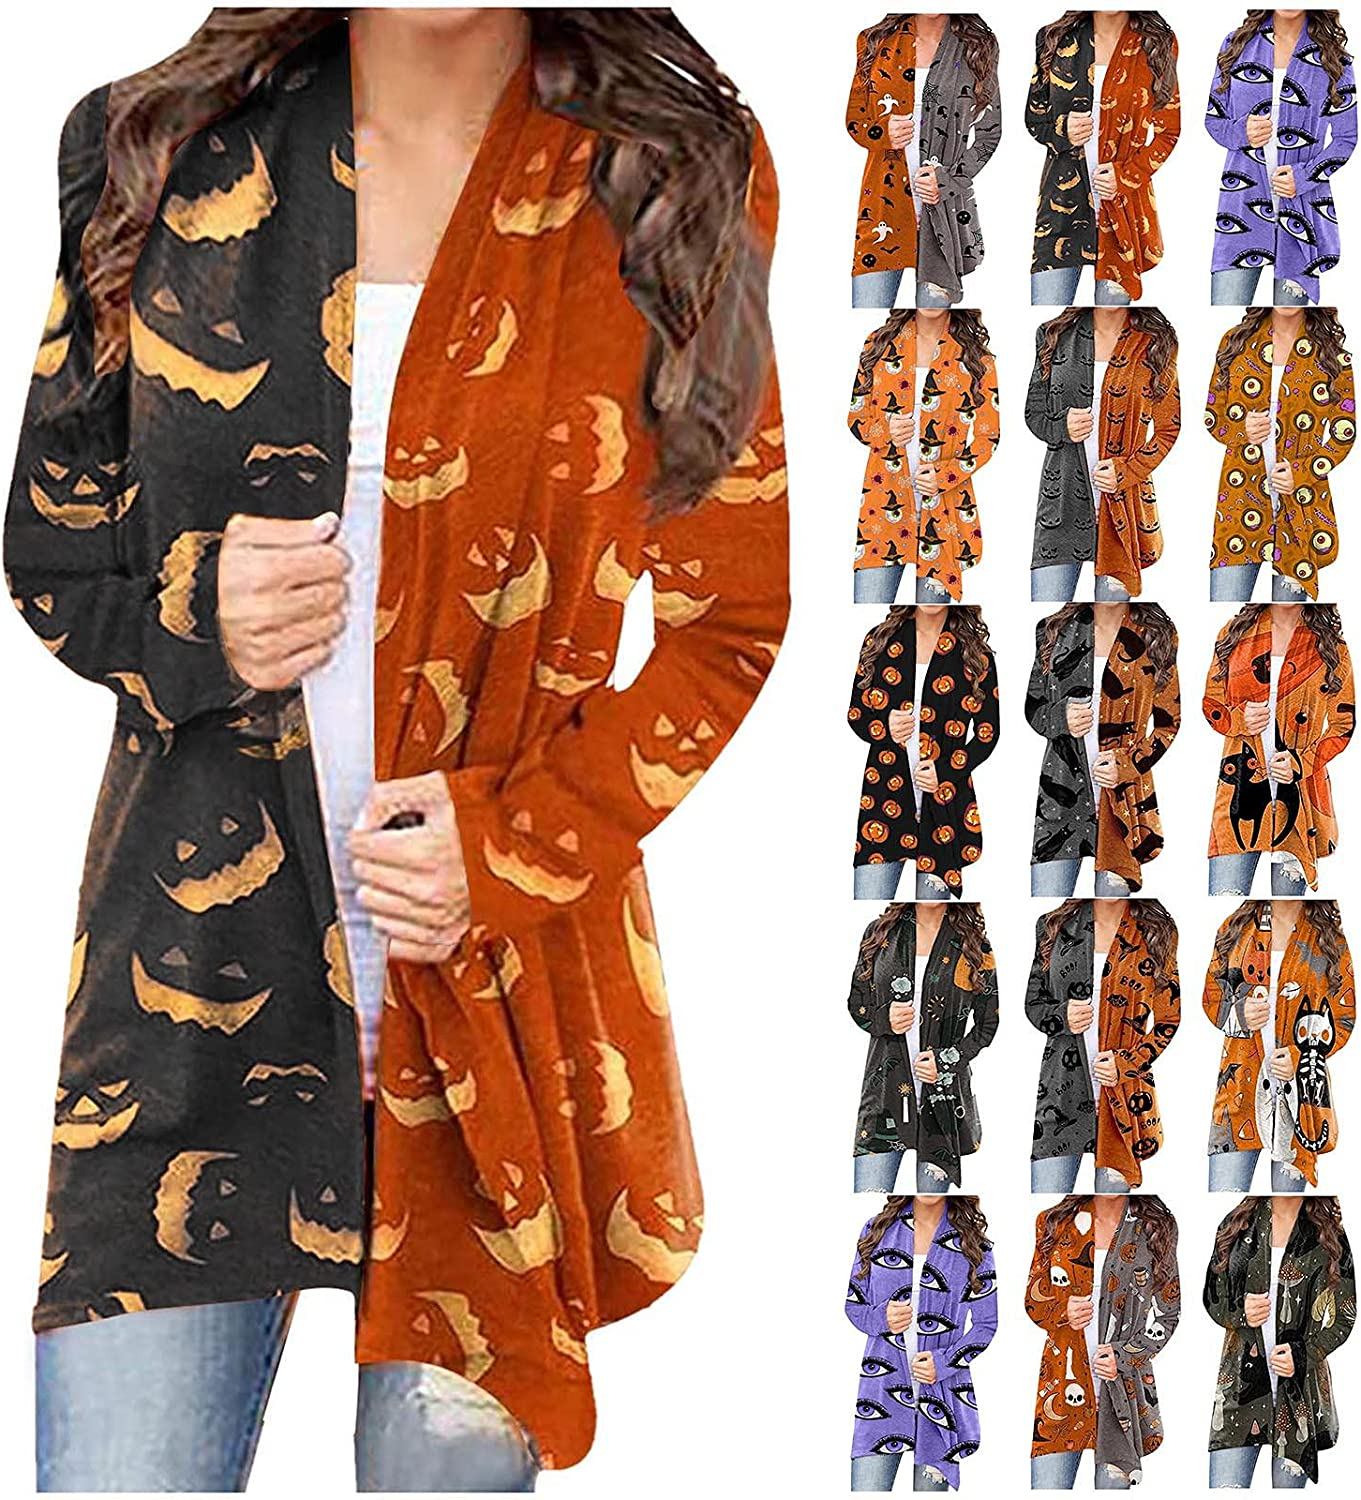 nunonette Womens Halloween Printed Graphic Funny Pattern Long Sleeve Tops Open Front Cardigan Blouse Lightweight Coat